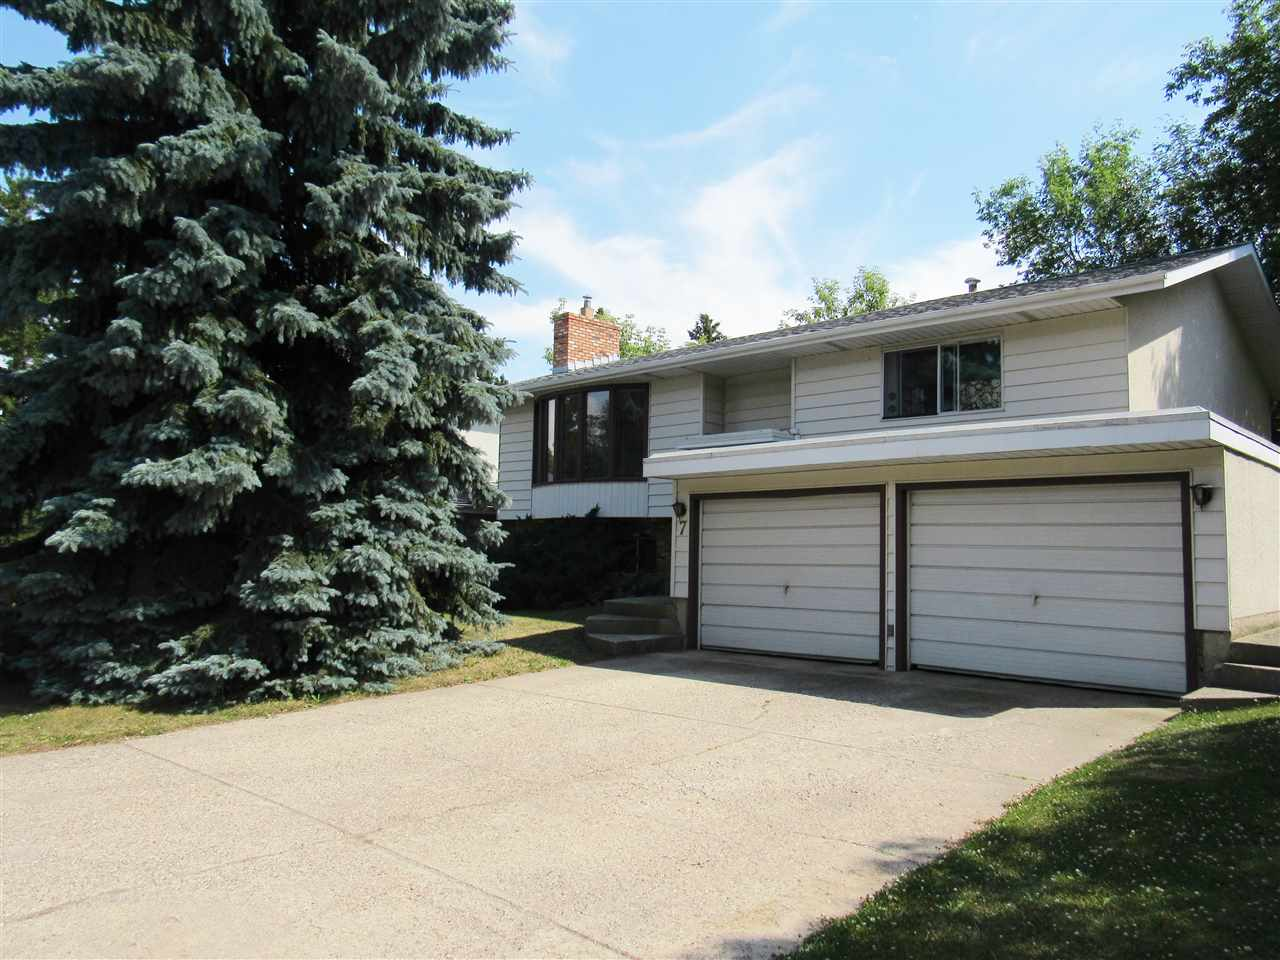 Main Photo: 7 GROVELAND Road: Sherwood Park House for sale : MLS® # E4070206